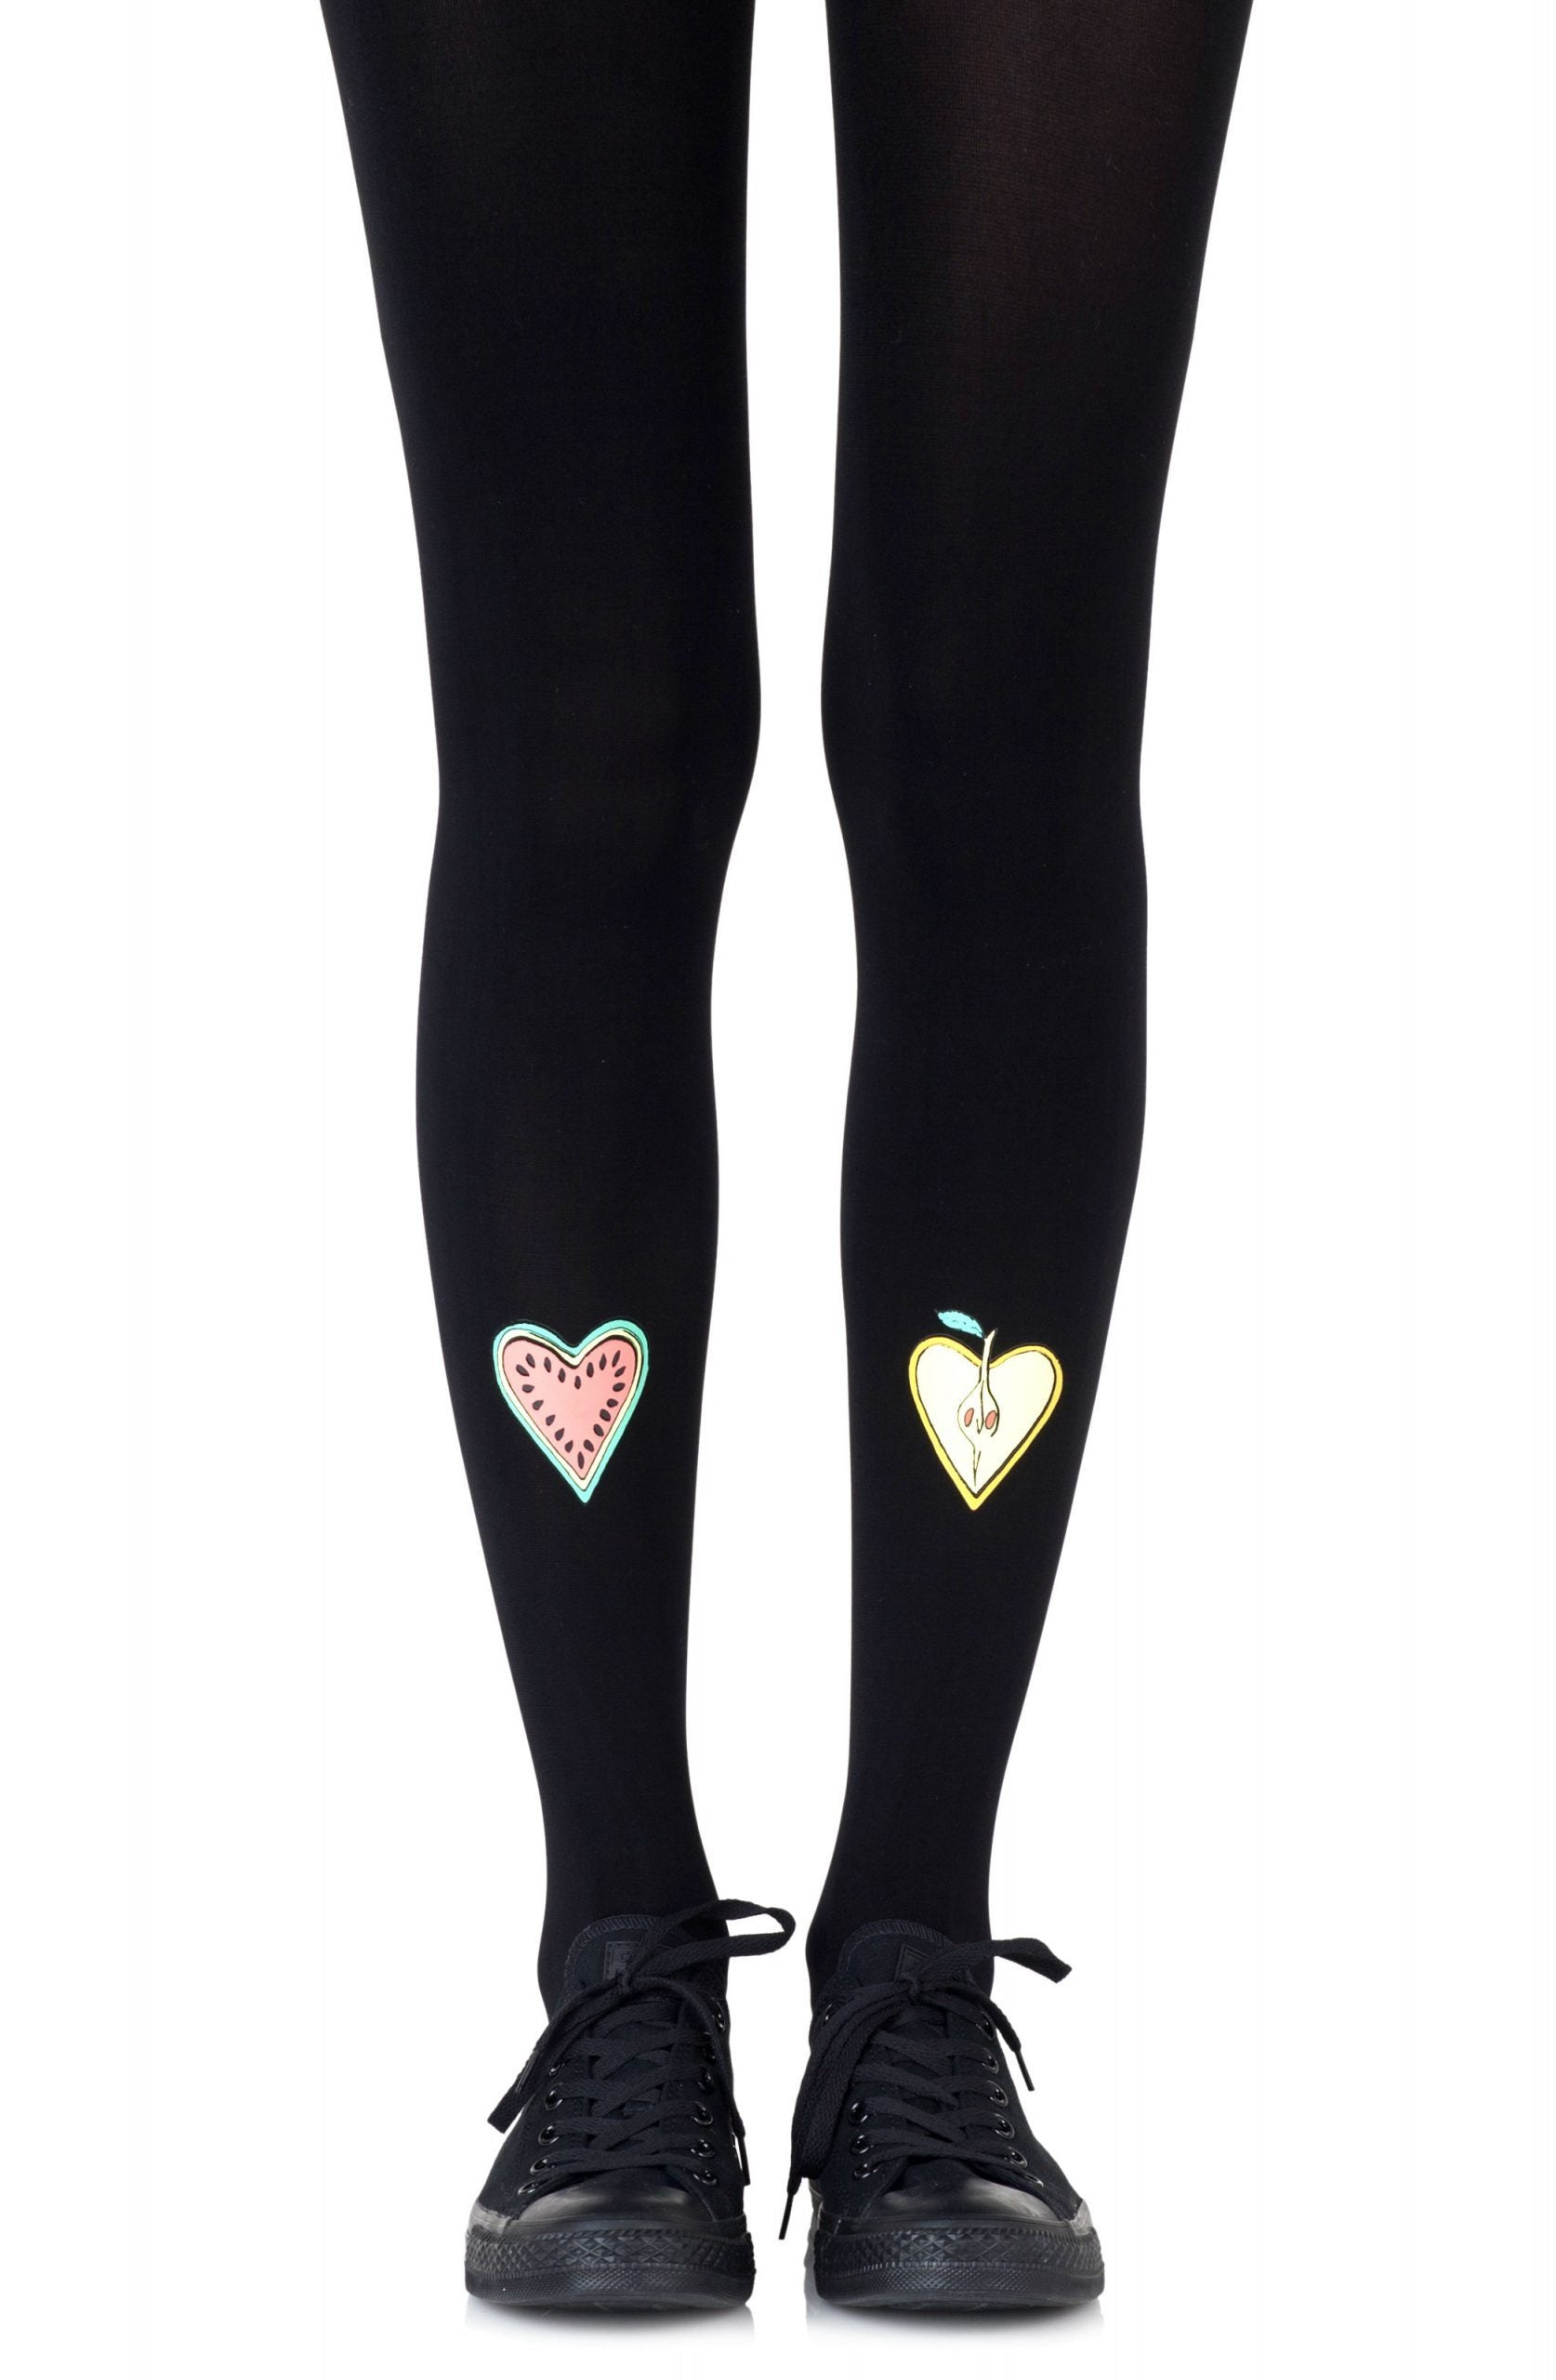 Zohara Fruit Cocktail Black Print Tights - Lingerie Best